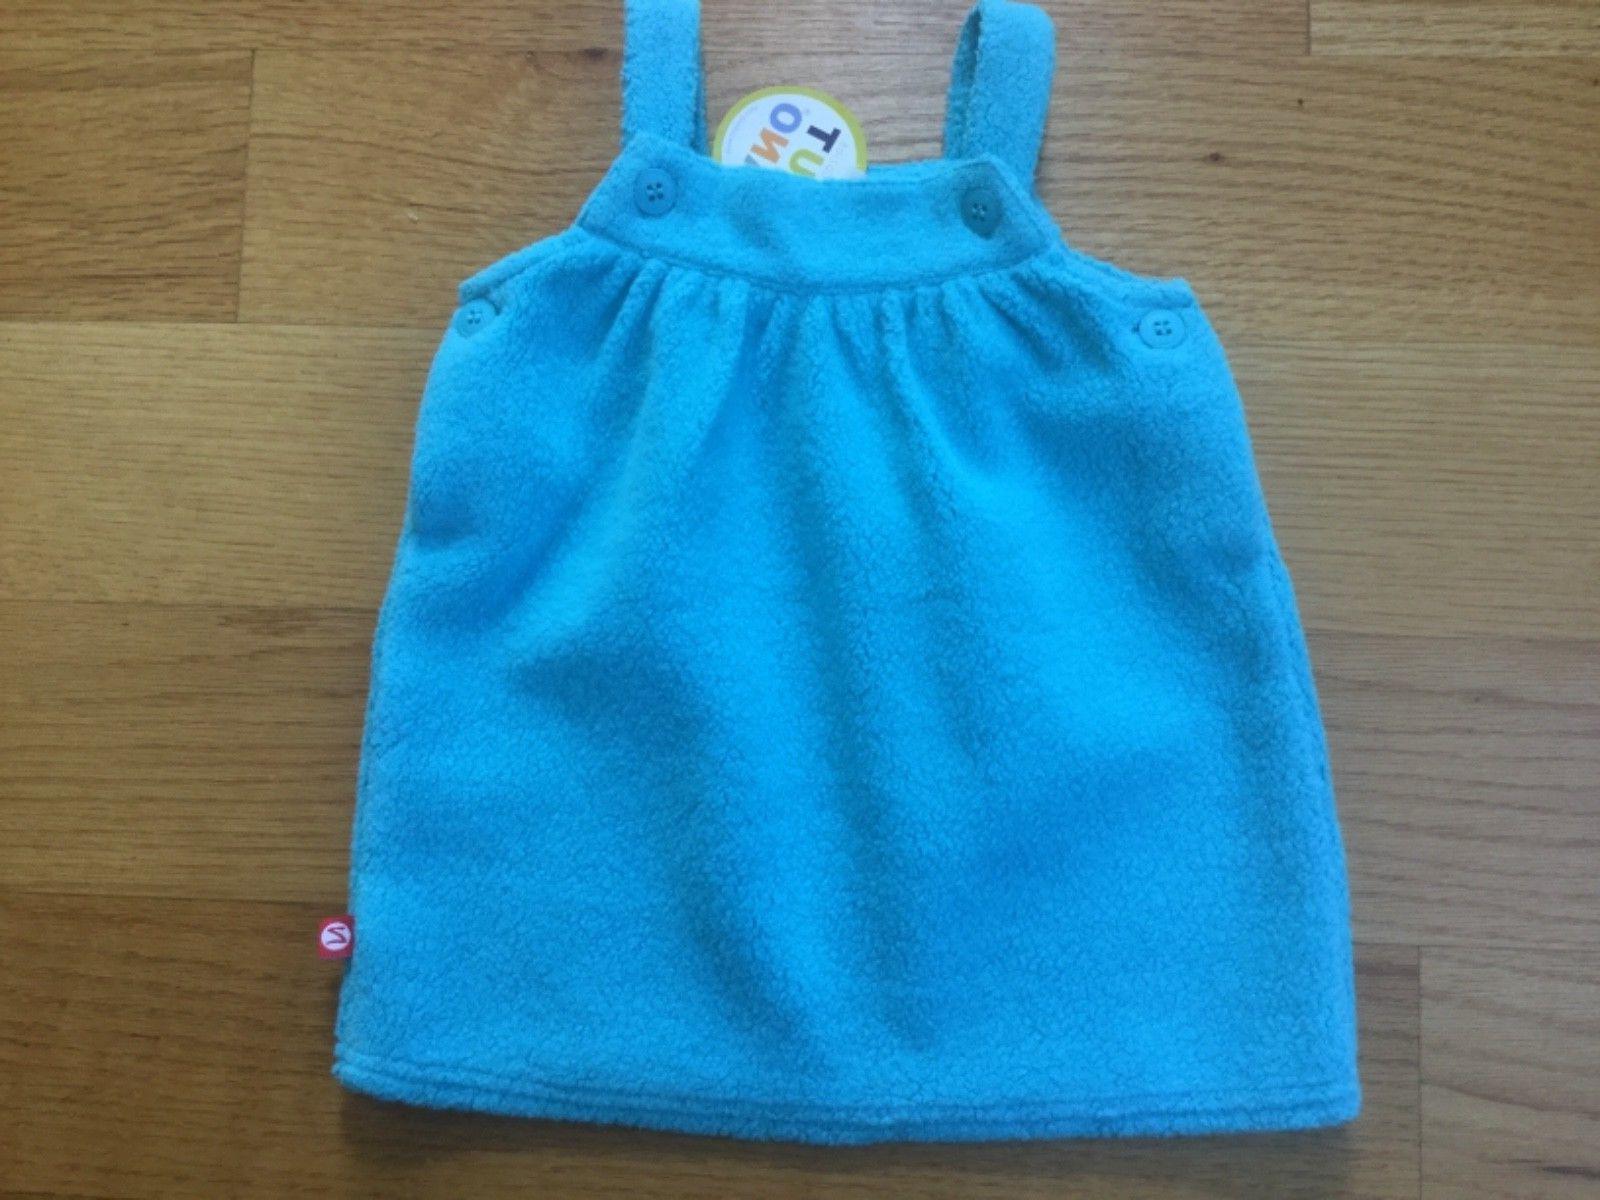 new infant fleece dress size 6 12